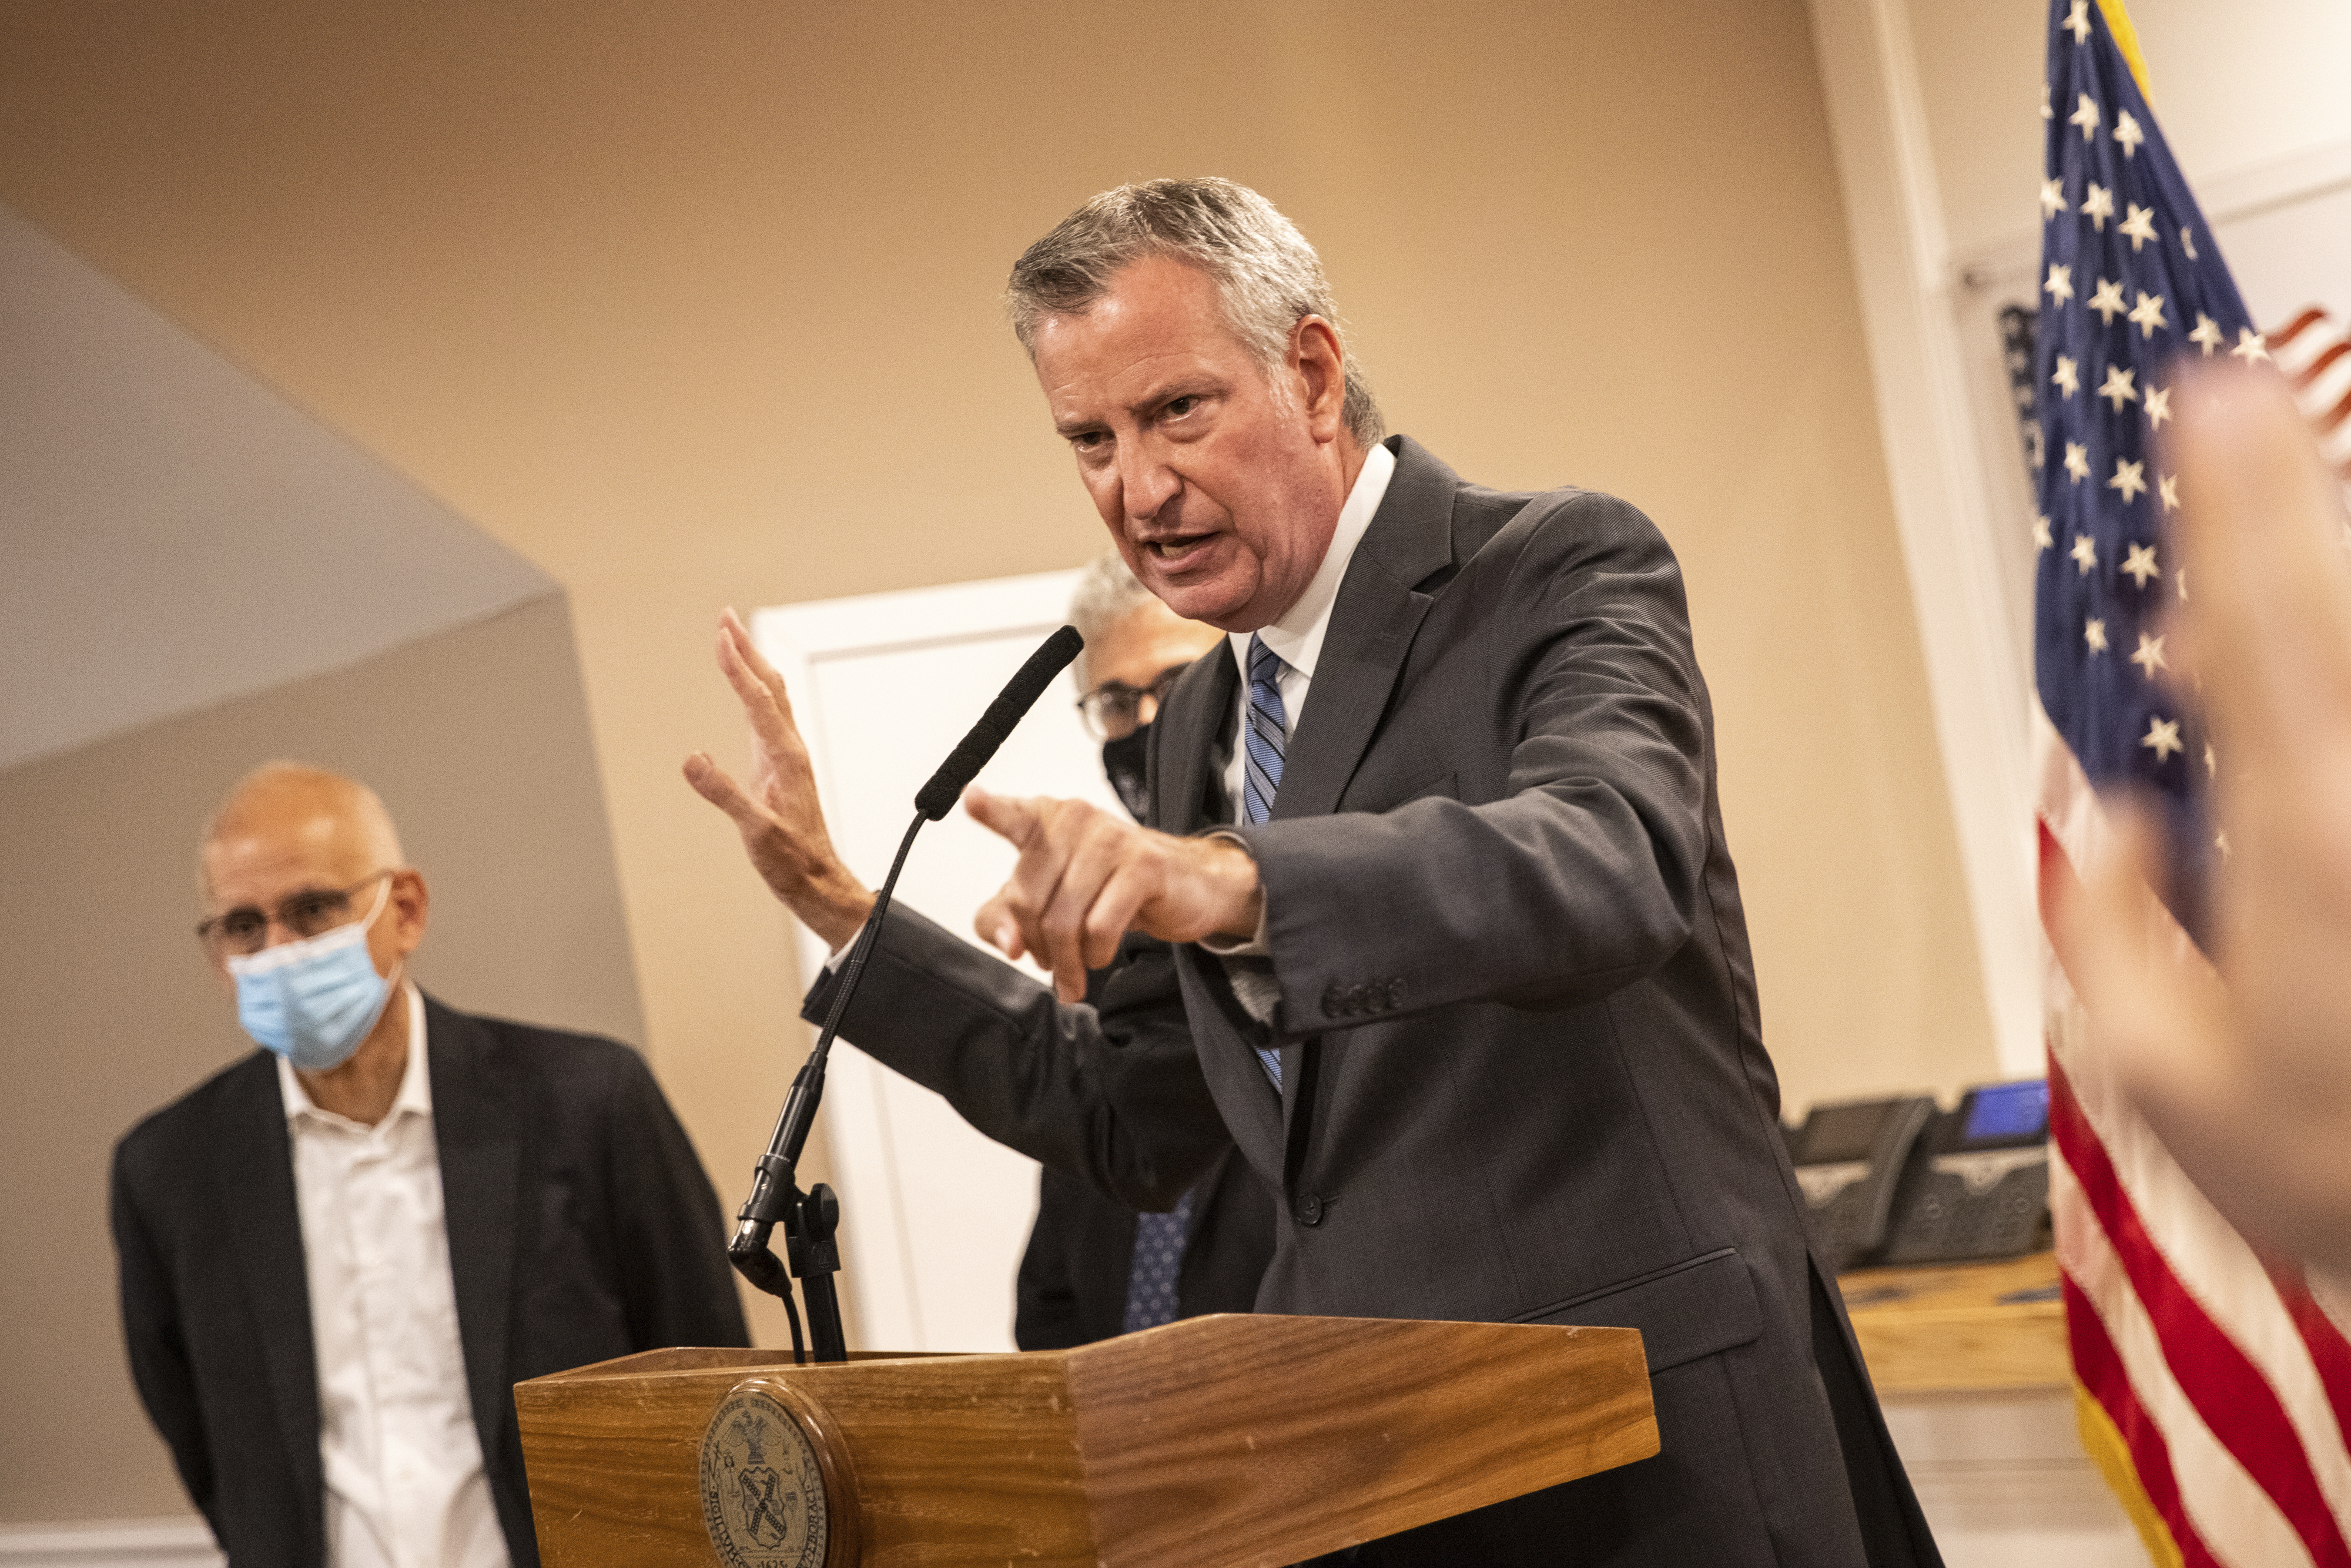 New York City mayor Bill de Blasio speaks during a news conference at the Rikers Island on Monday, Sept. 27, 2021, in New York.